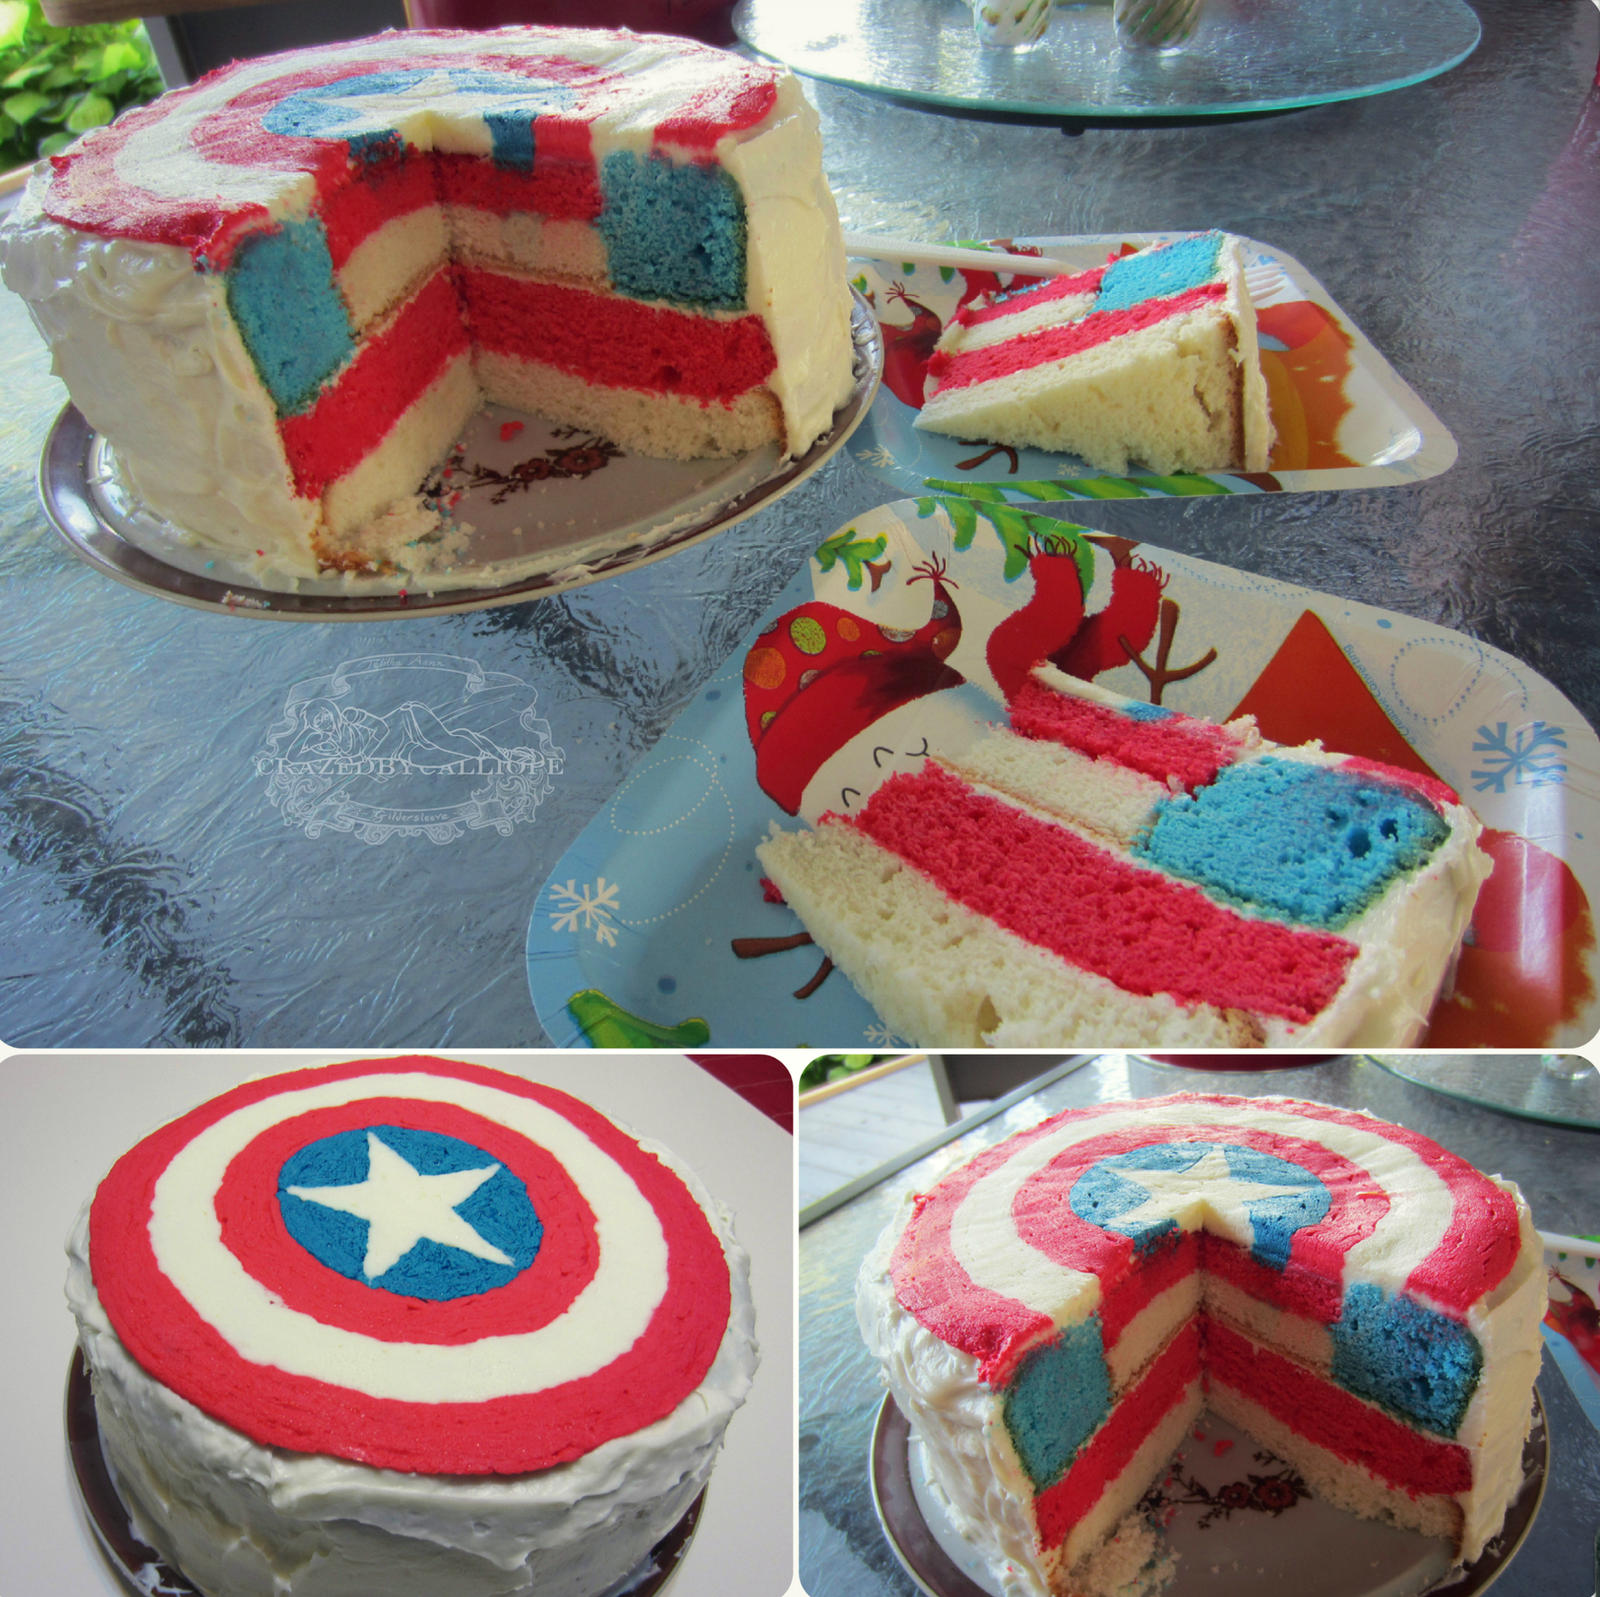 Captain America Cake by CrazedByCalliope